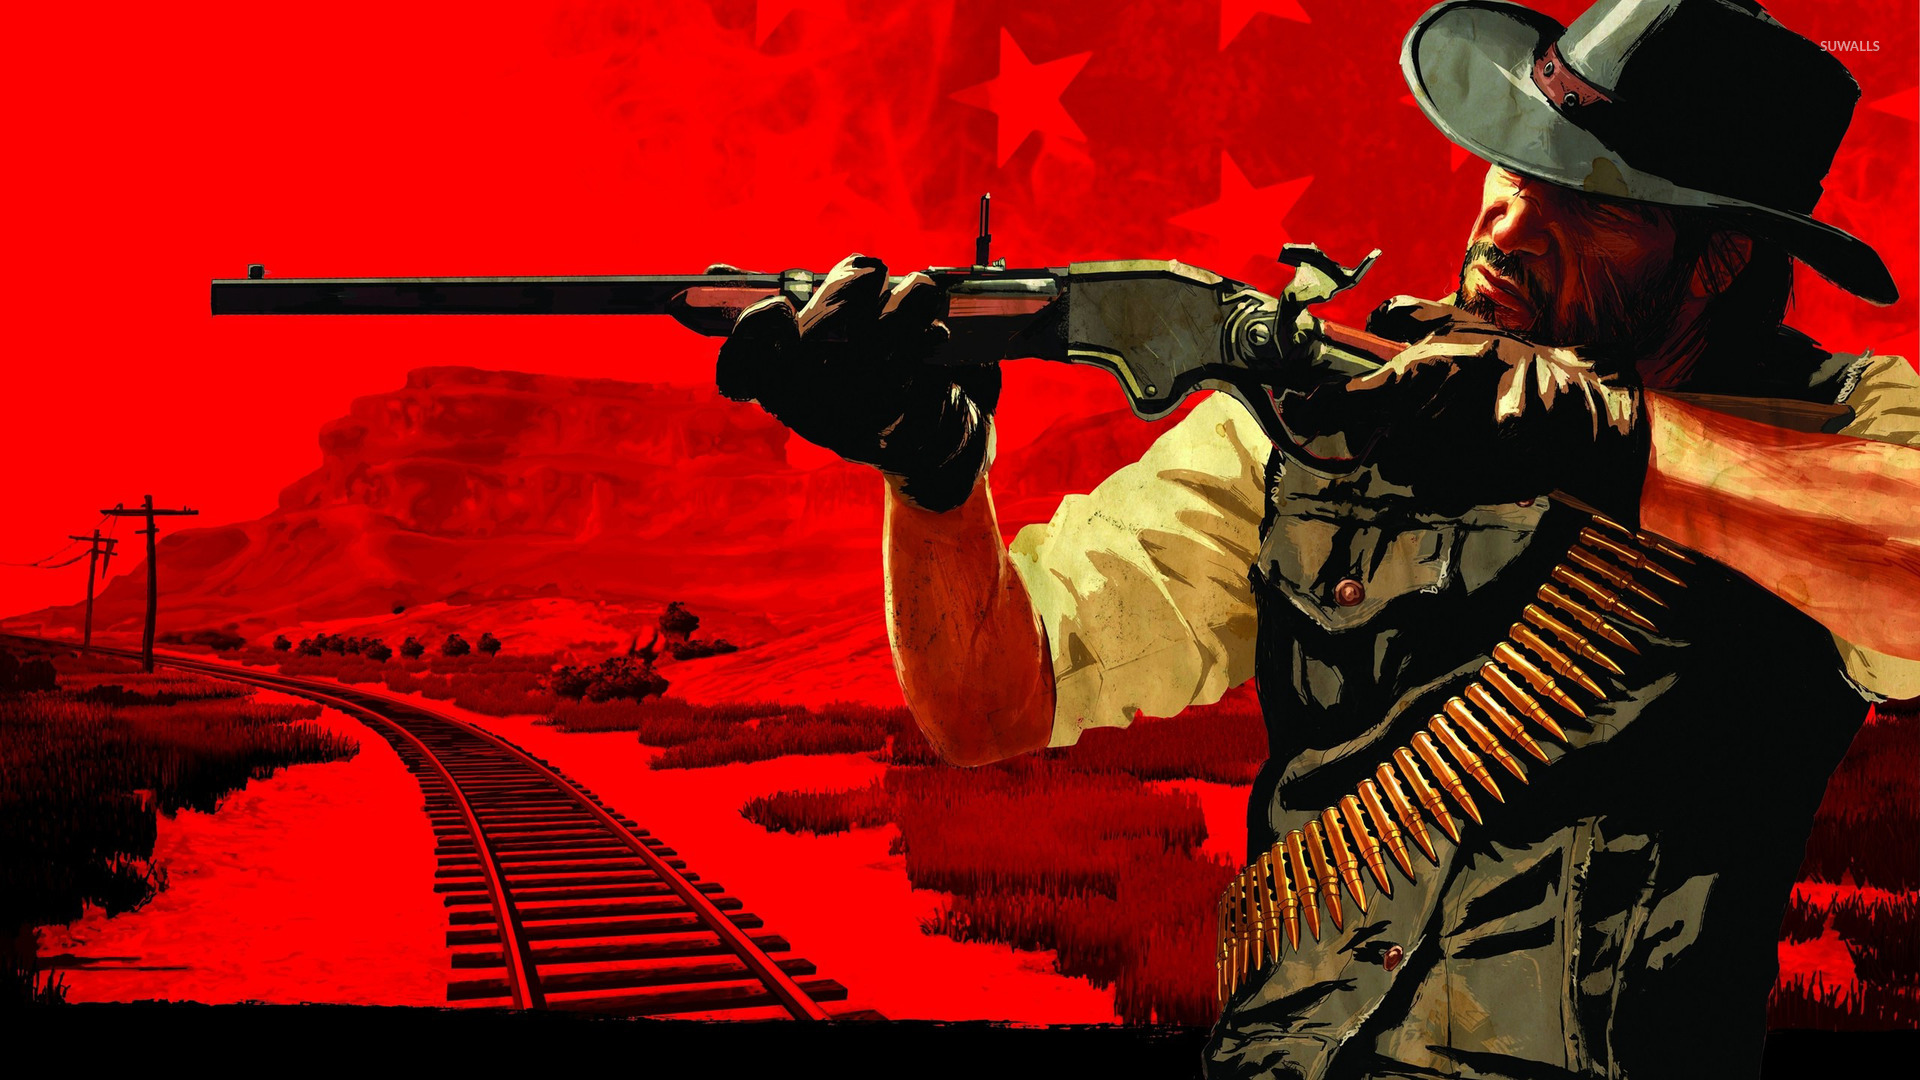 Free Download Red Dead Redemption Wallpaper Game Wallpapers 18344